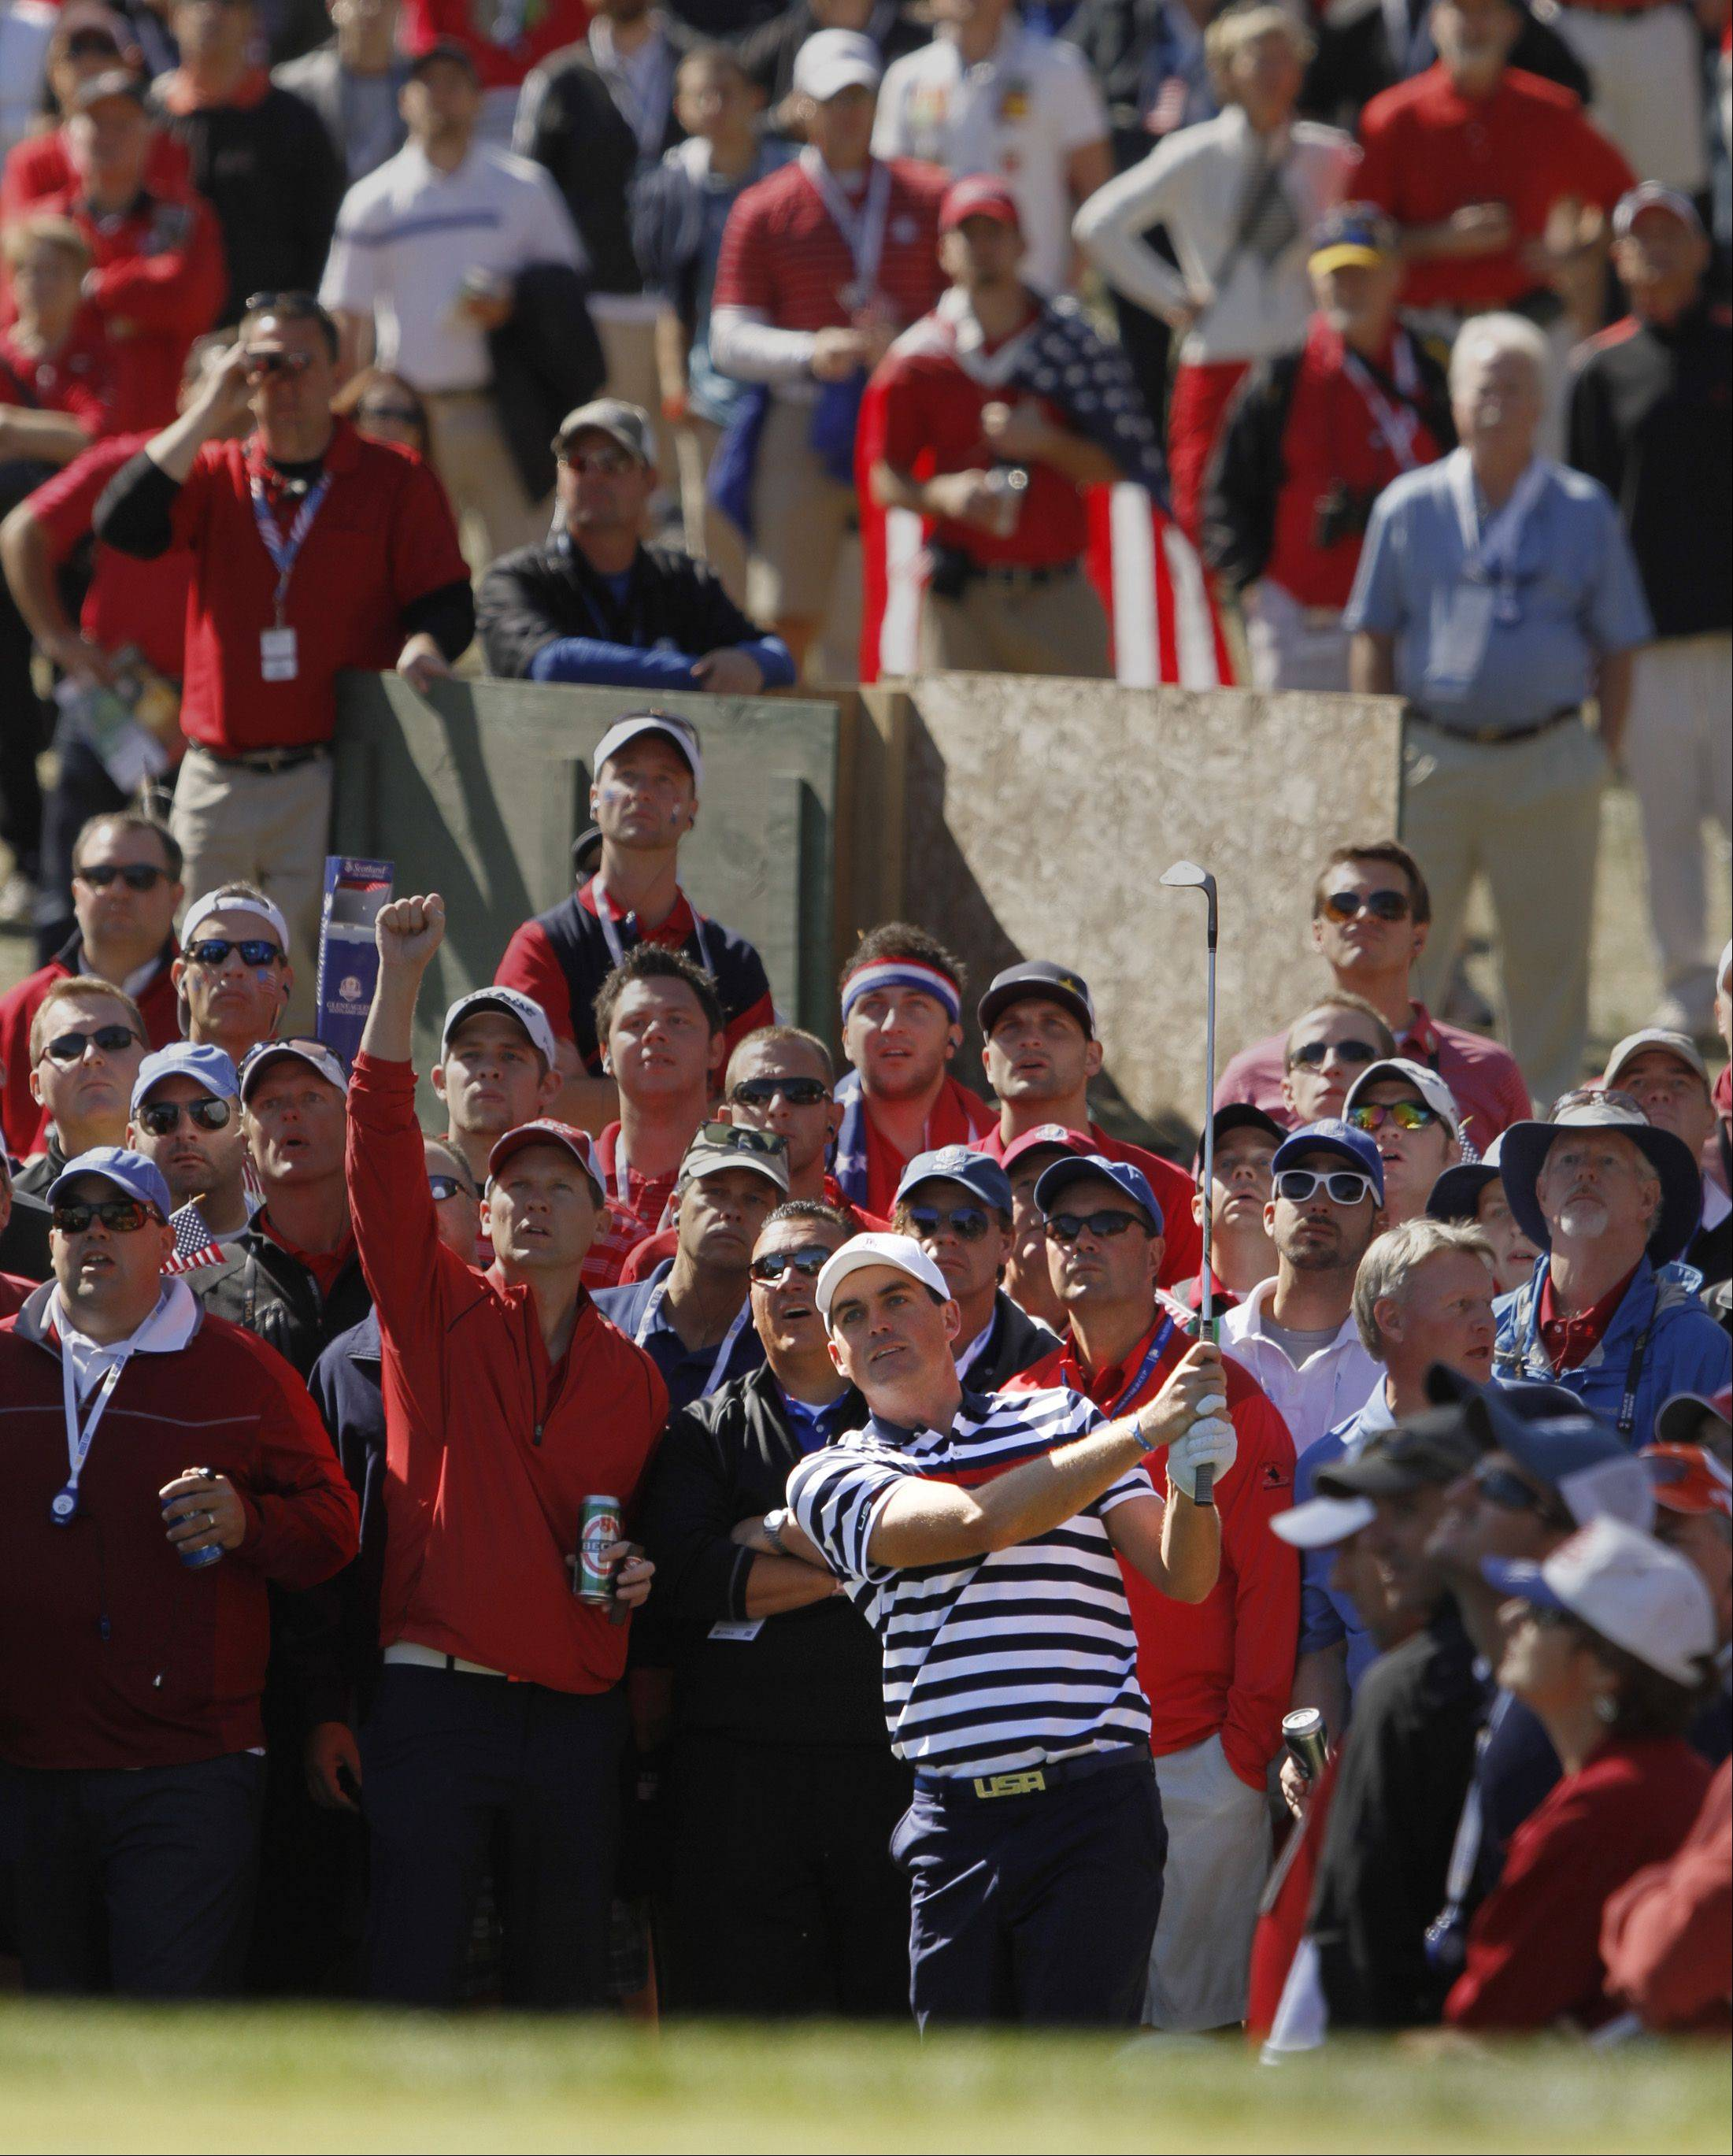 Keegan Bradley fires a shot from the rough as the crowd watches in anticipation.